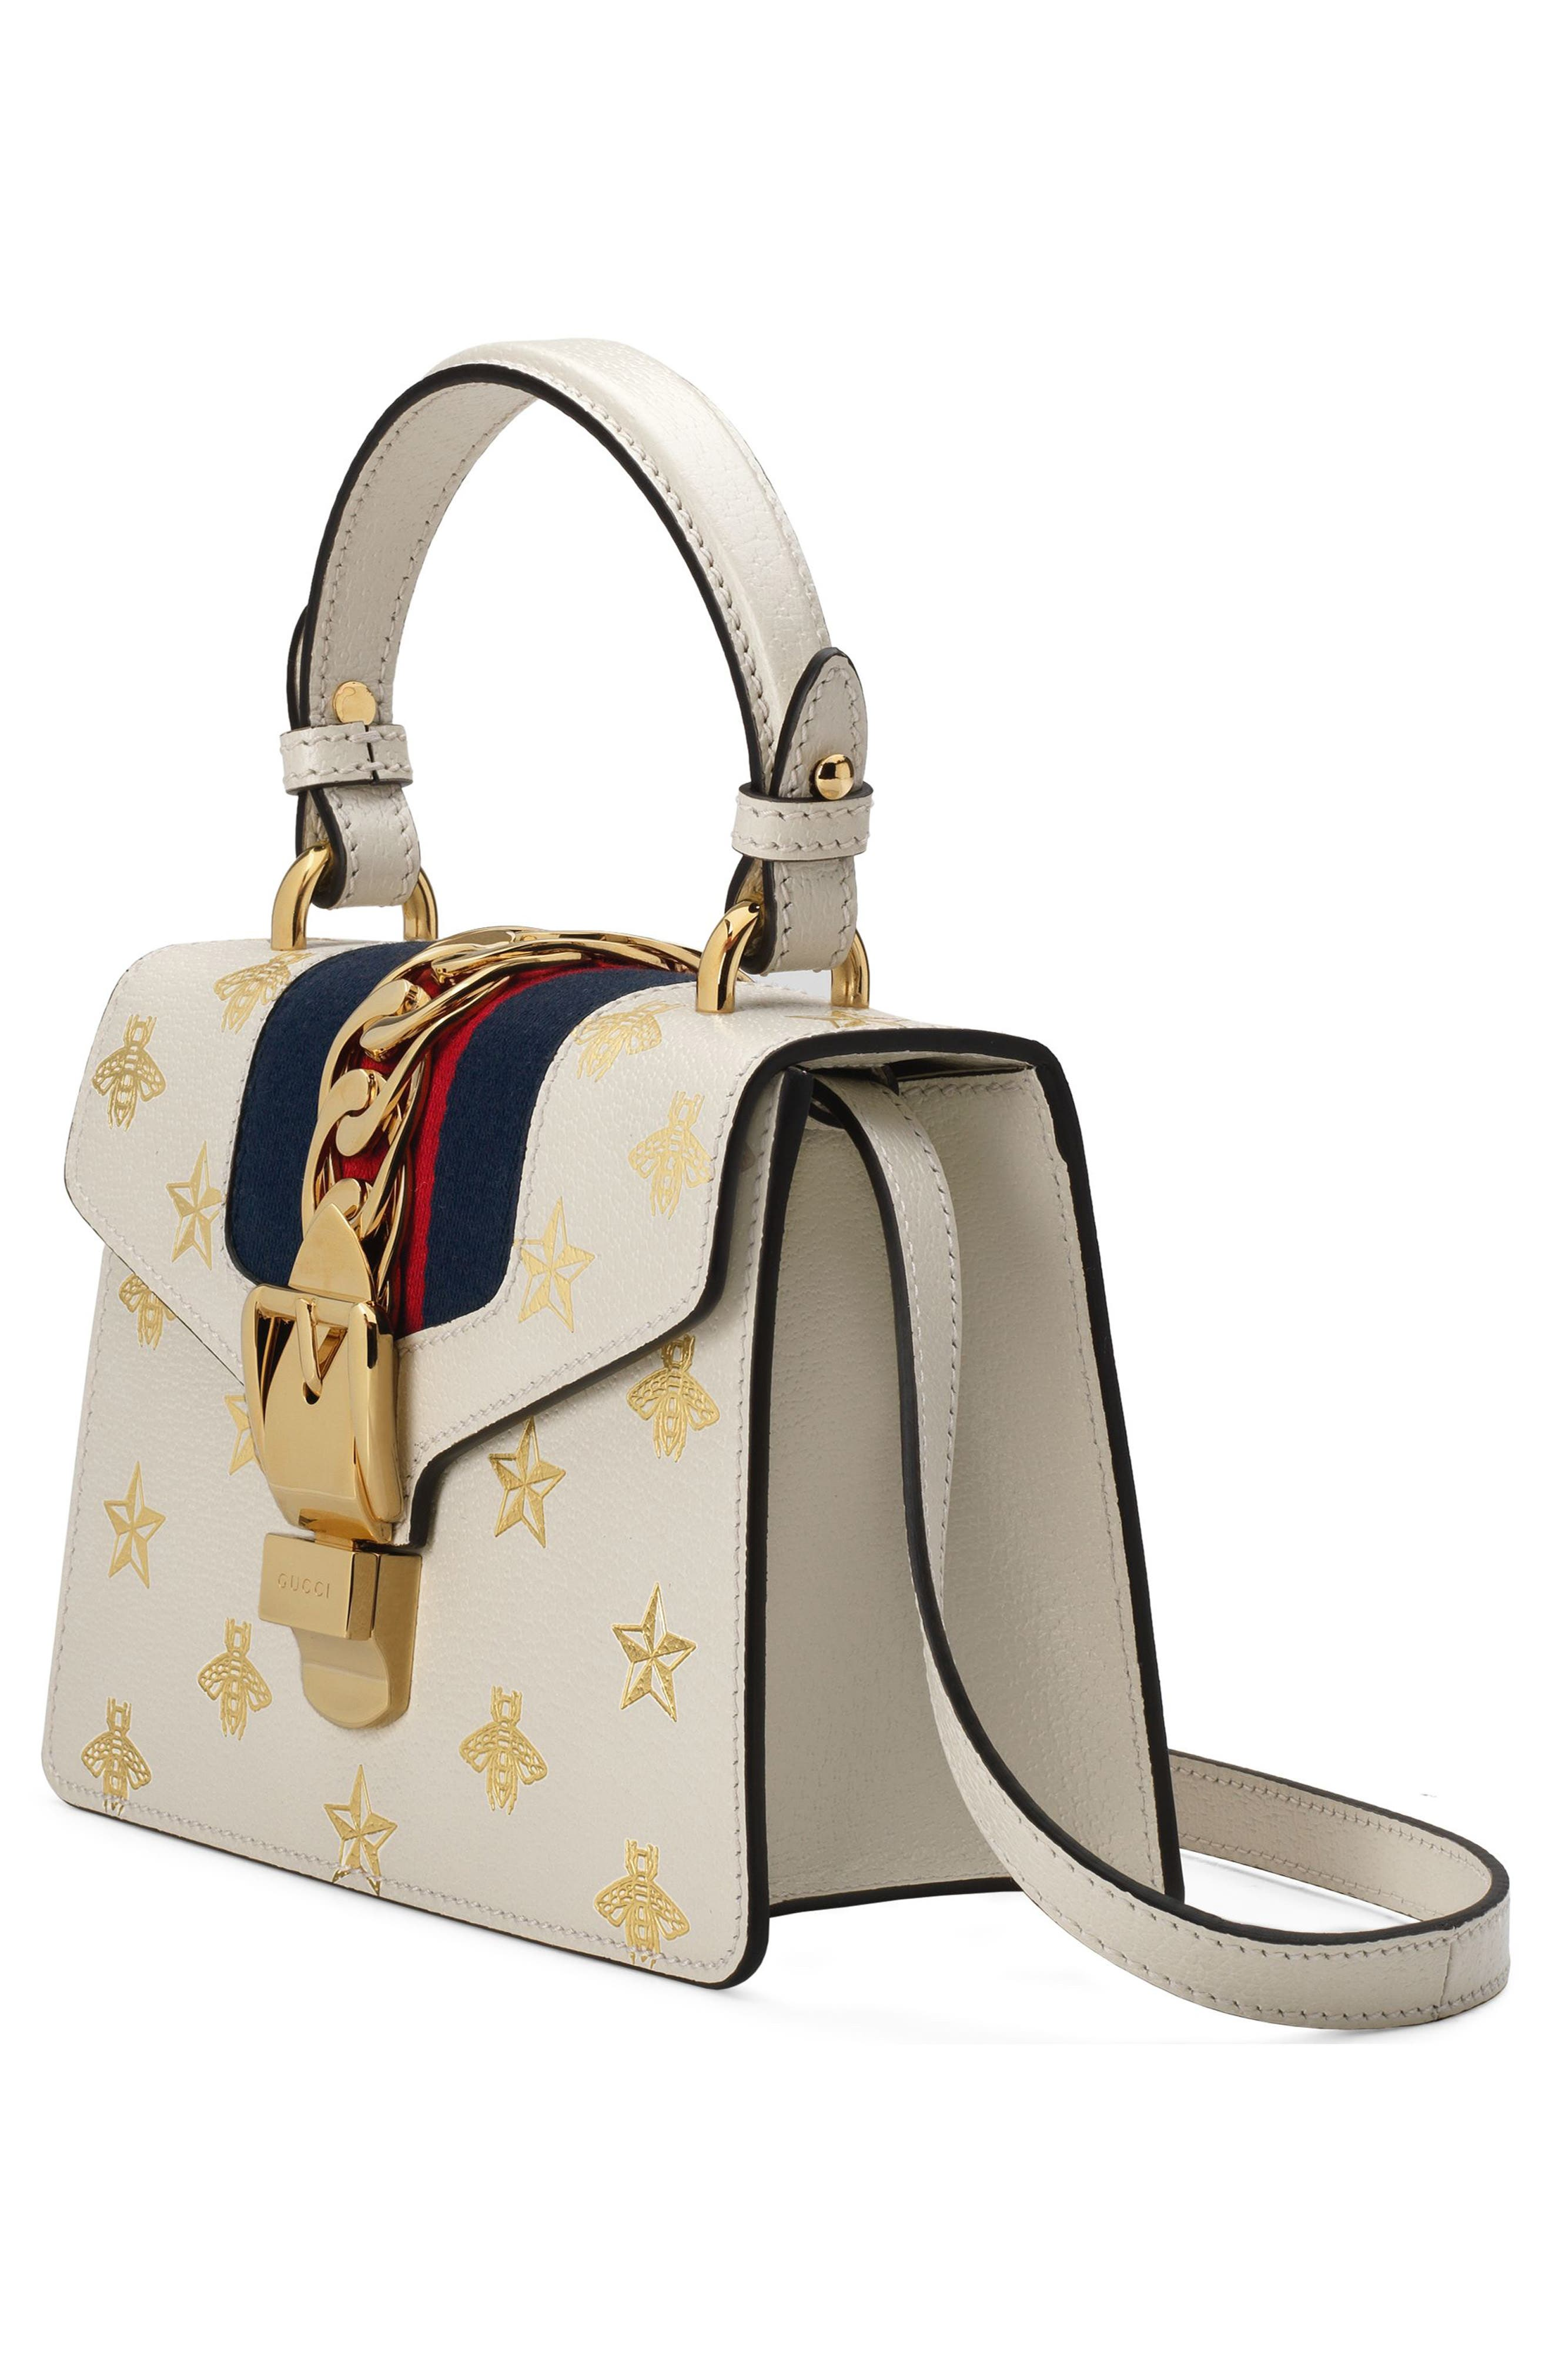 Small Sylvie Top Handle Leather Shoulder Bag,                             Alternate thumbnail 4, color,                             MYSTIC WHITE/ ORO/ BLUE/ RED